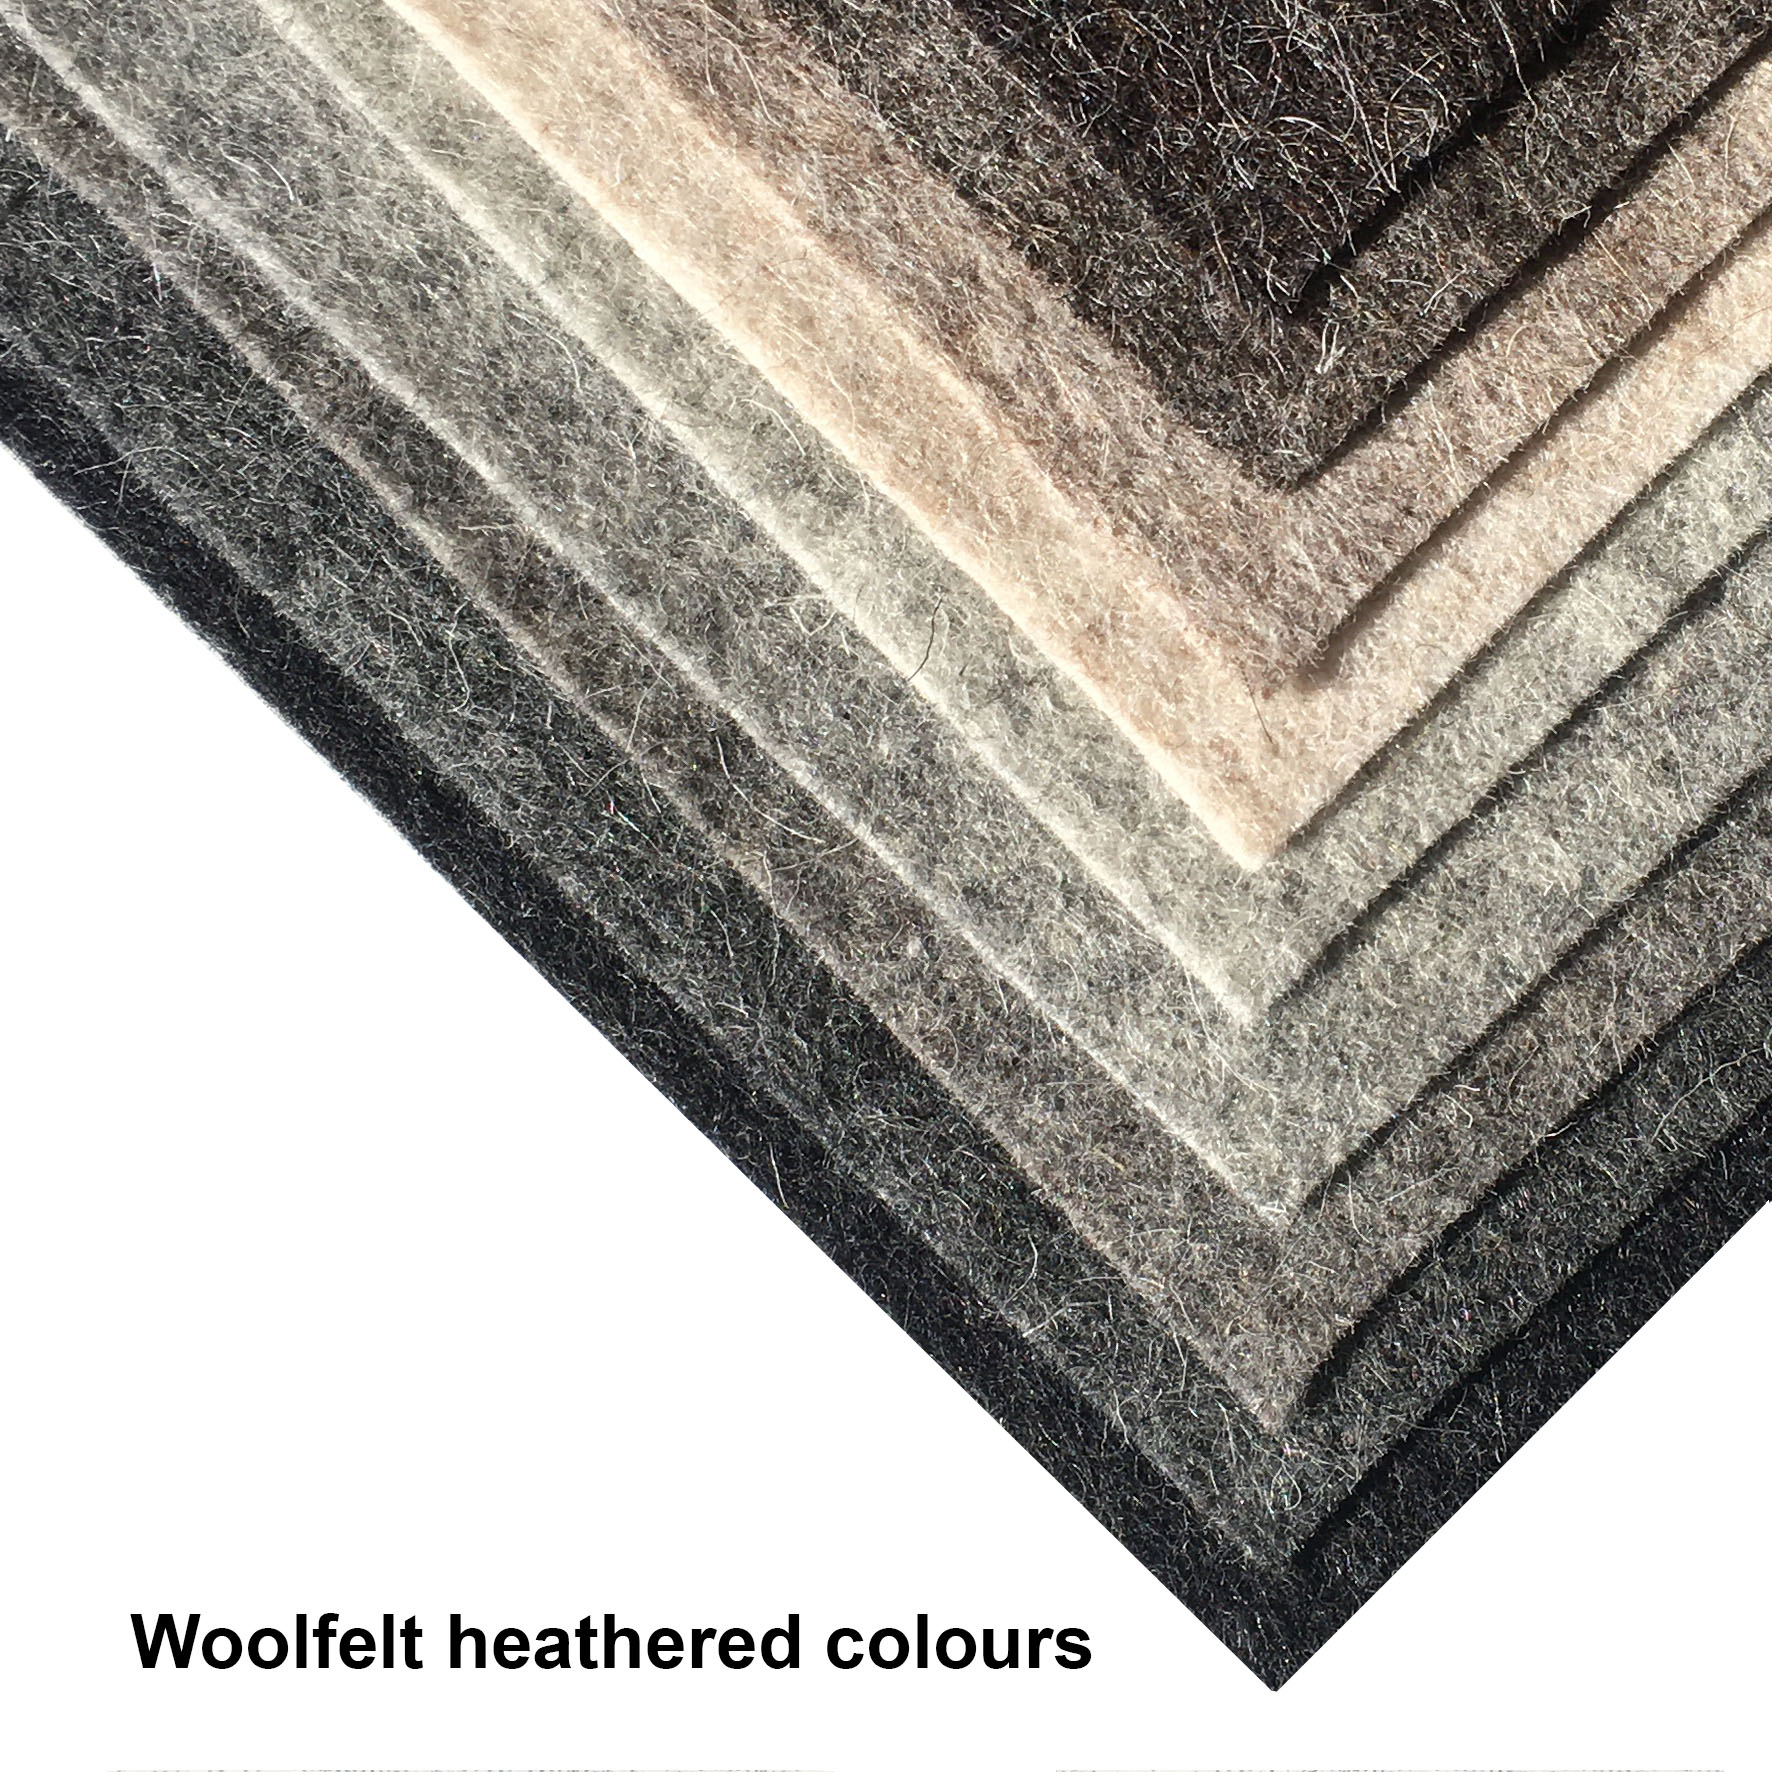 Woolfelt heathered colours